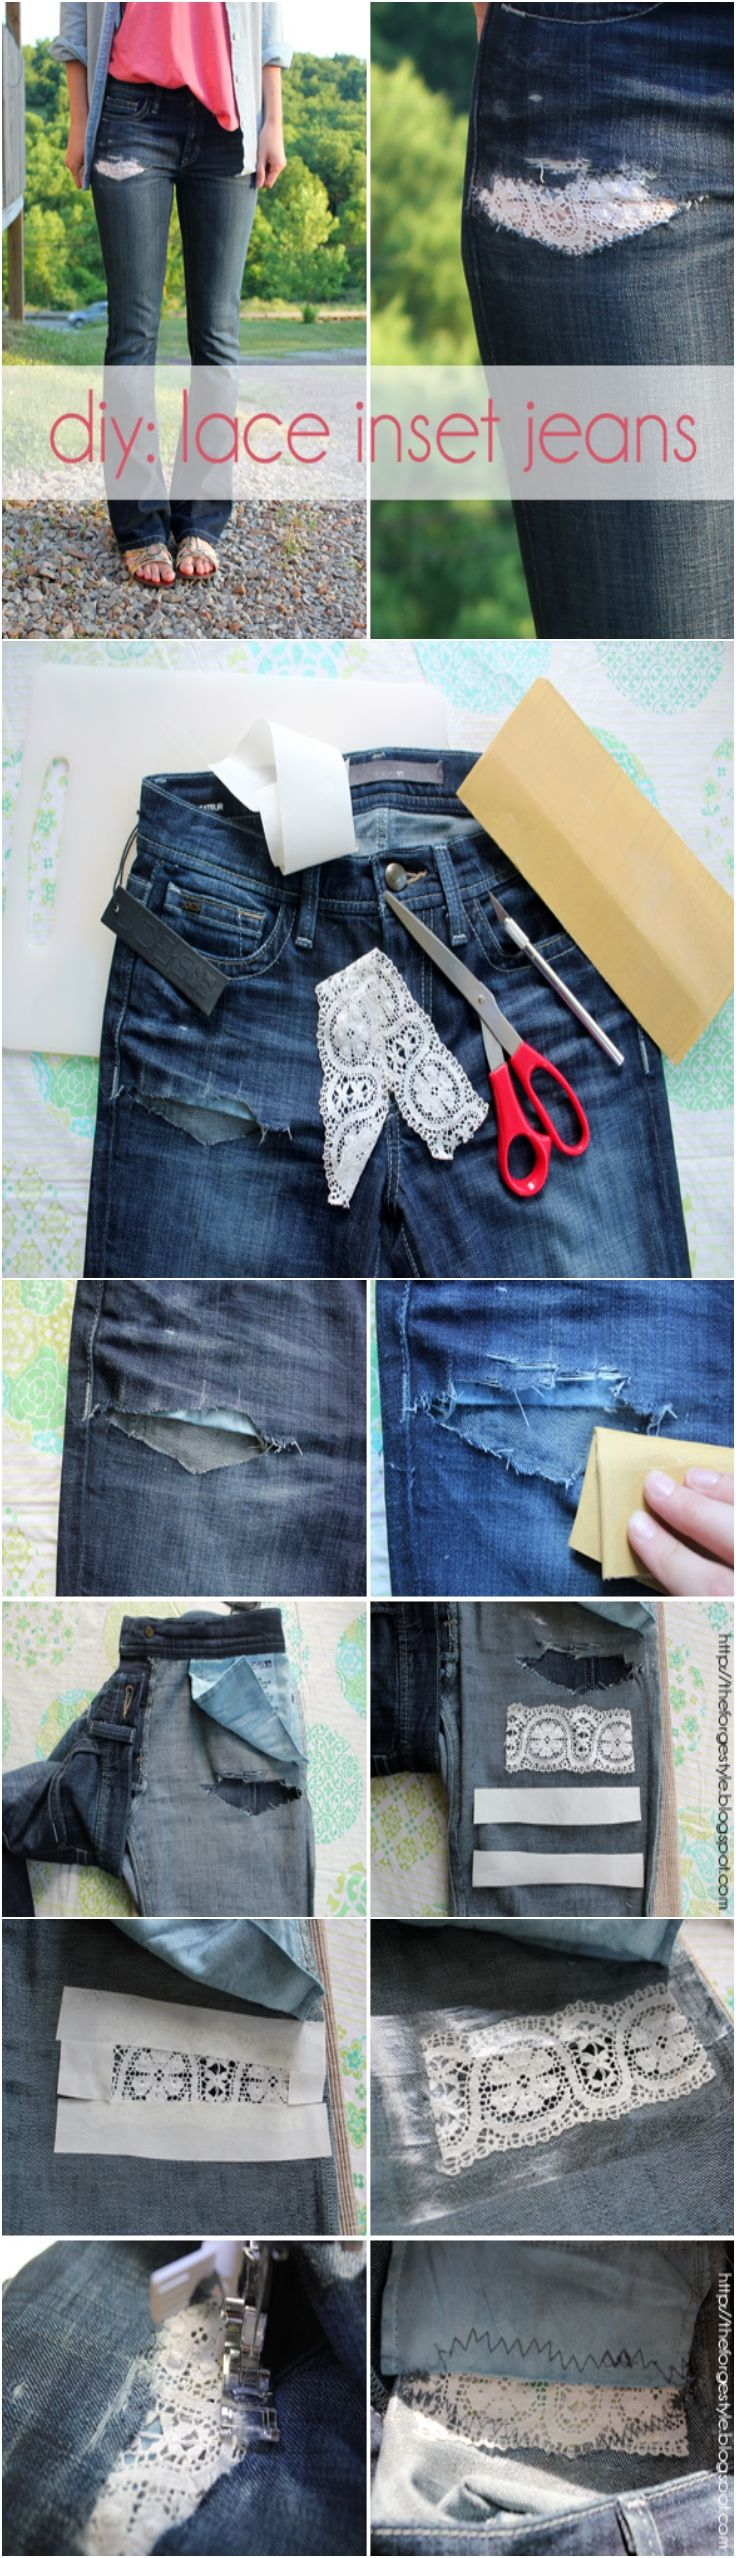 DIY: Lace Inset Jeans @Georjean Nakagawa Nakagawa Nakagawa Nakagawa Nakagawa Nickell Rose so you don't get in trouble